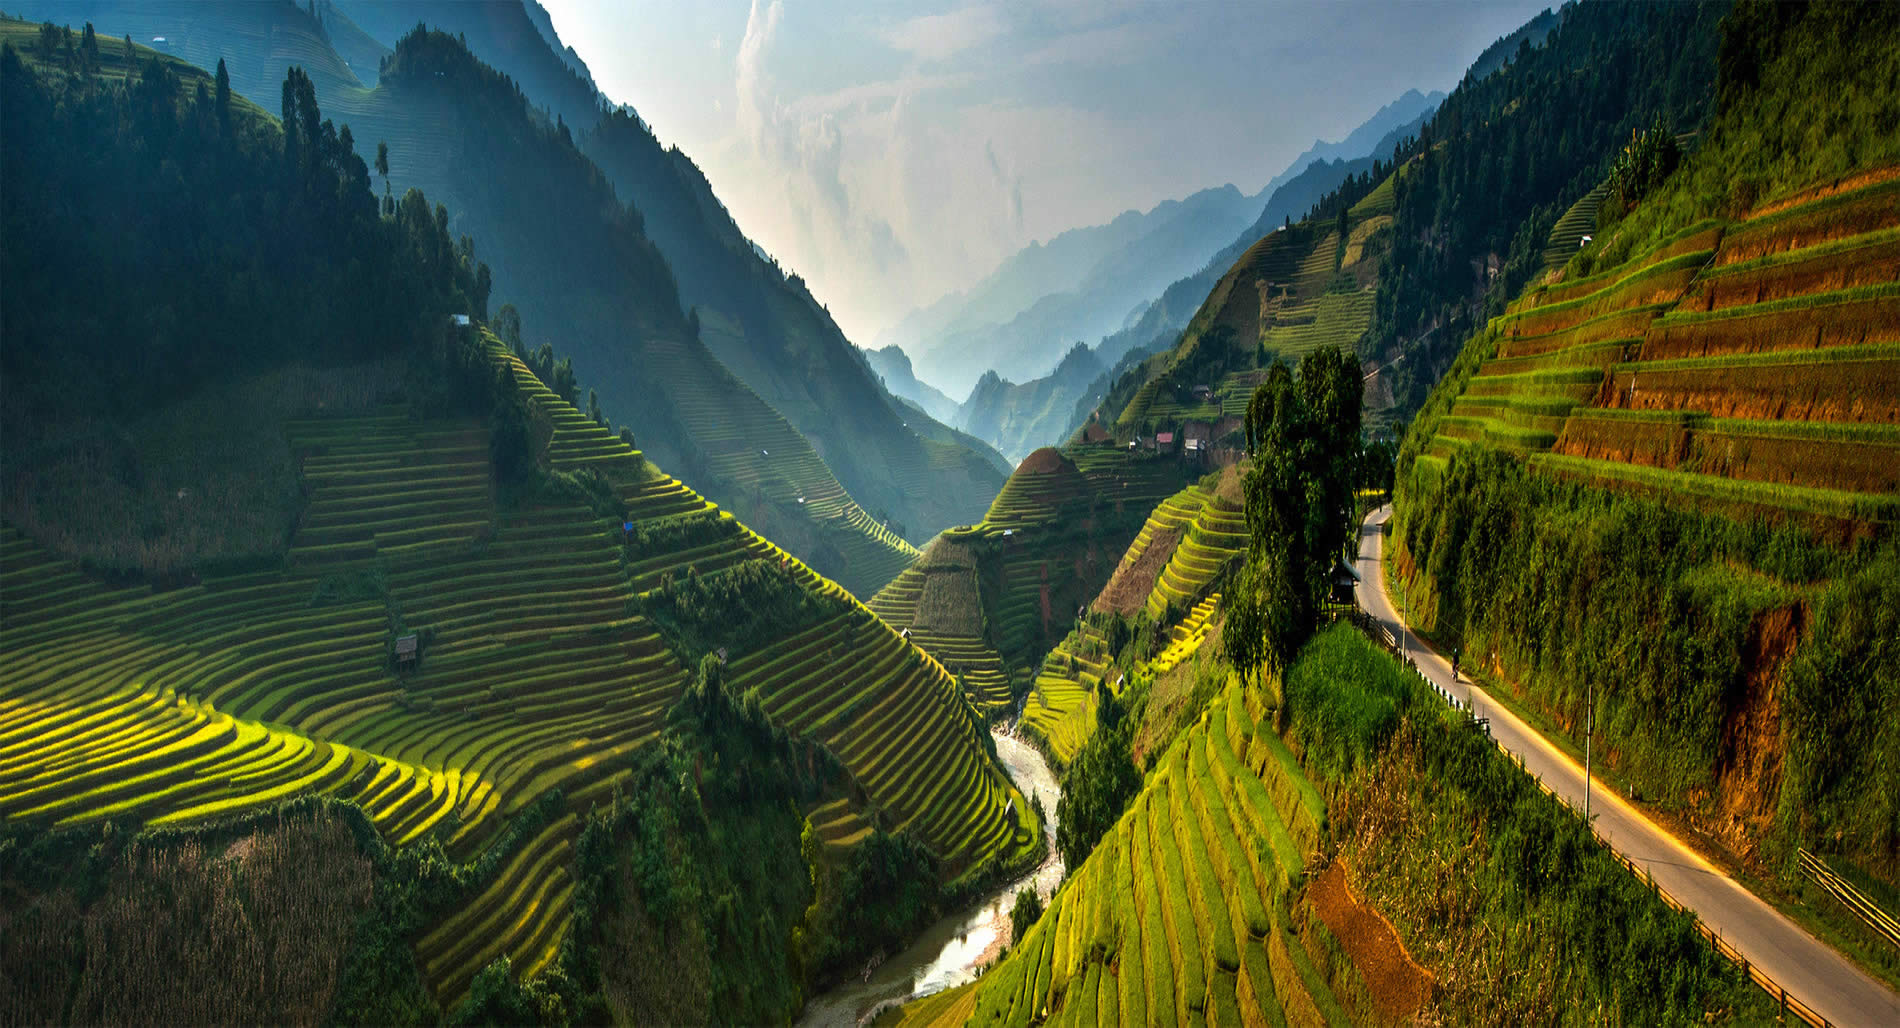 high altitude rice terraces, mountains, valley, by  Sarawut Intarob